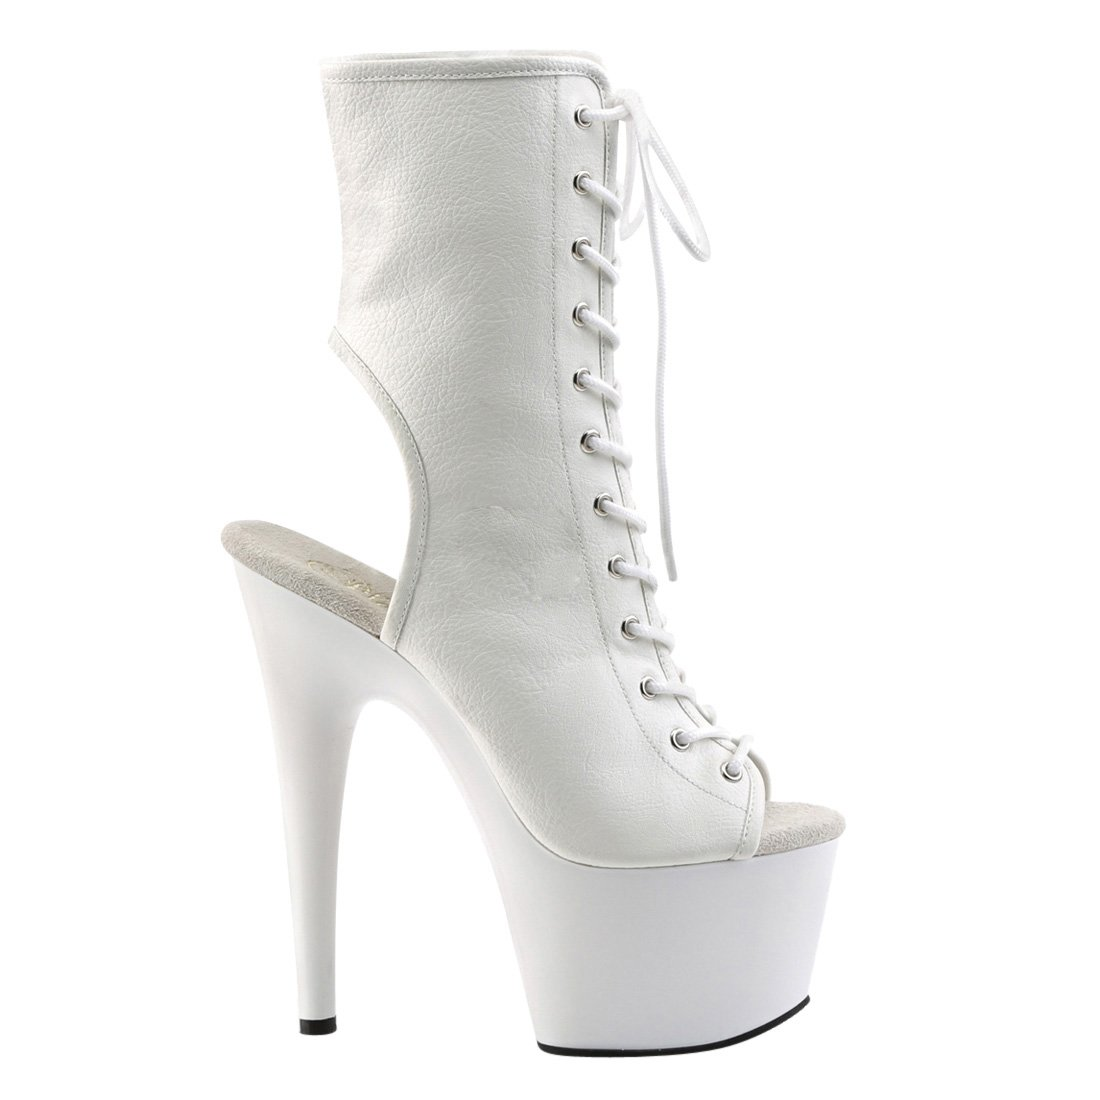 Pleaser Women's Adore-1016 Ankle Boot B01N08HHYK 10 B(M) US White Faux Leather/White